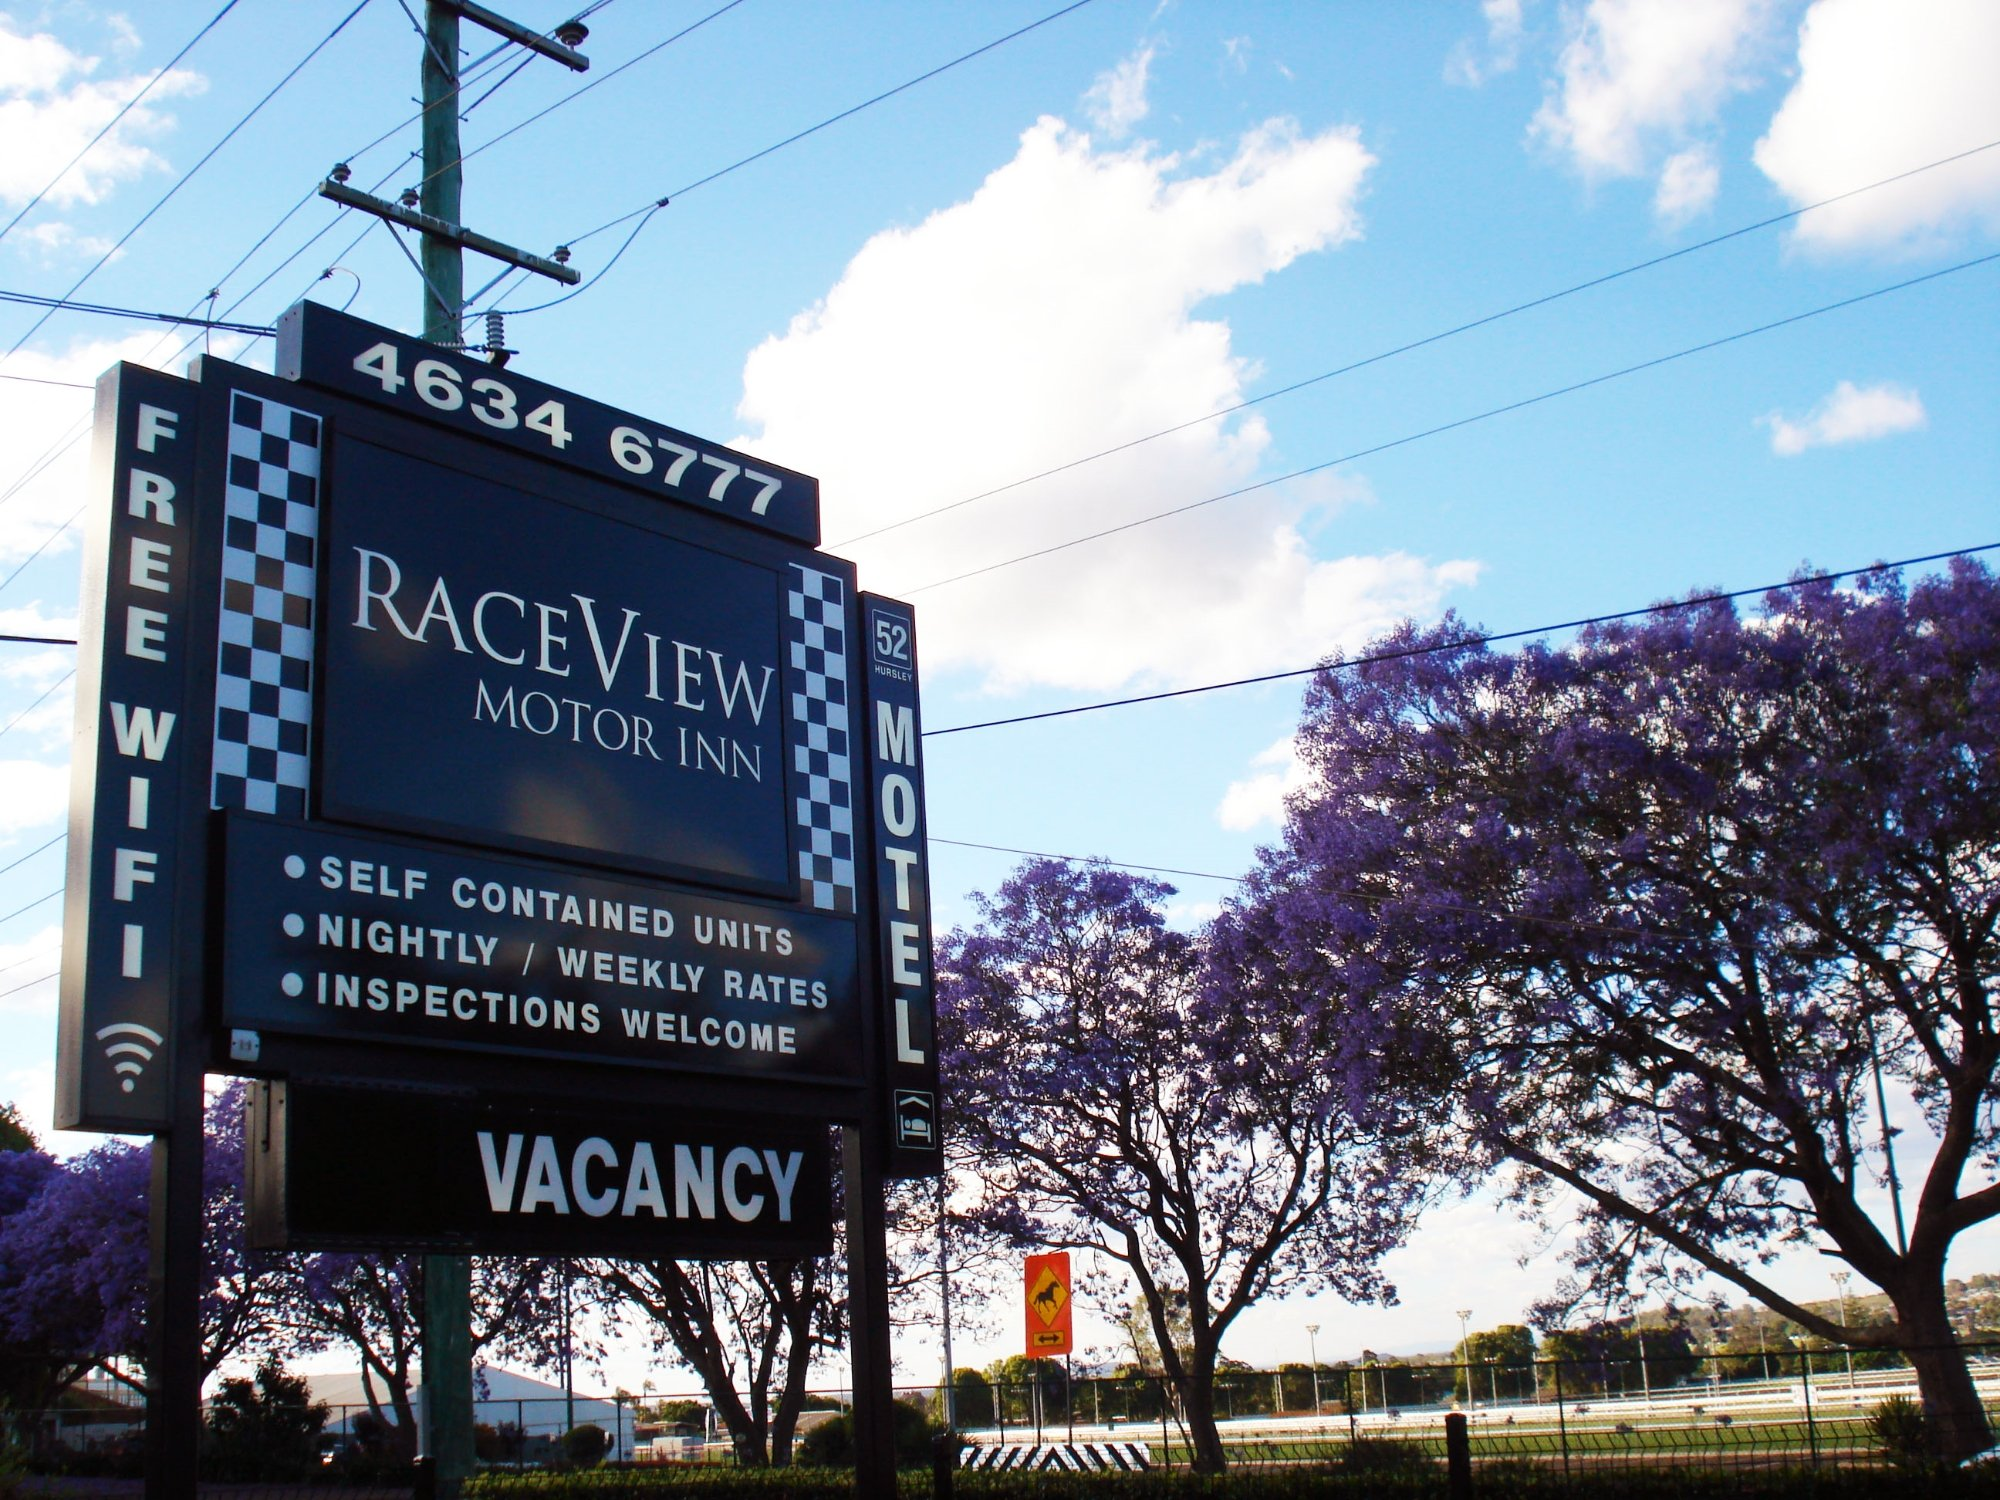 Raceview Motor Inn